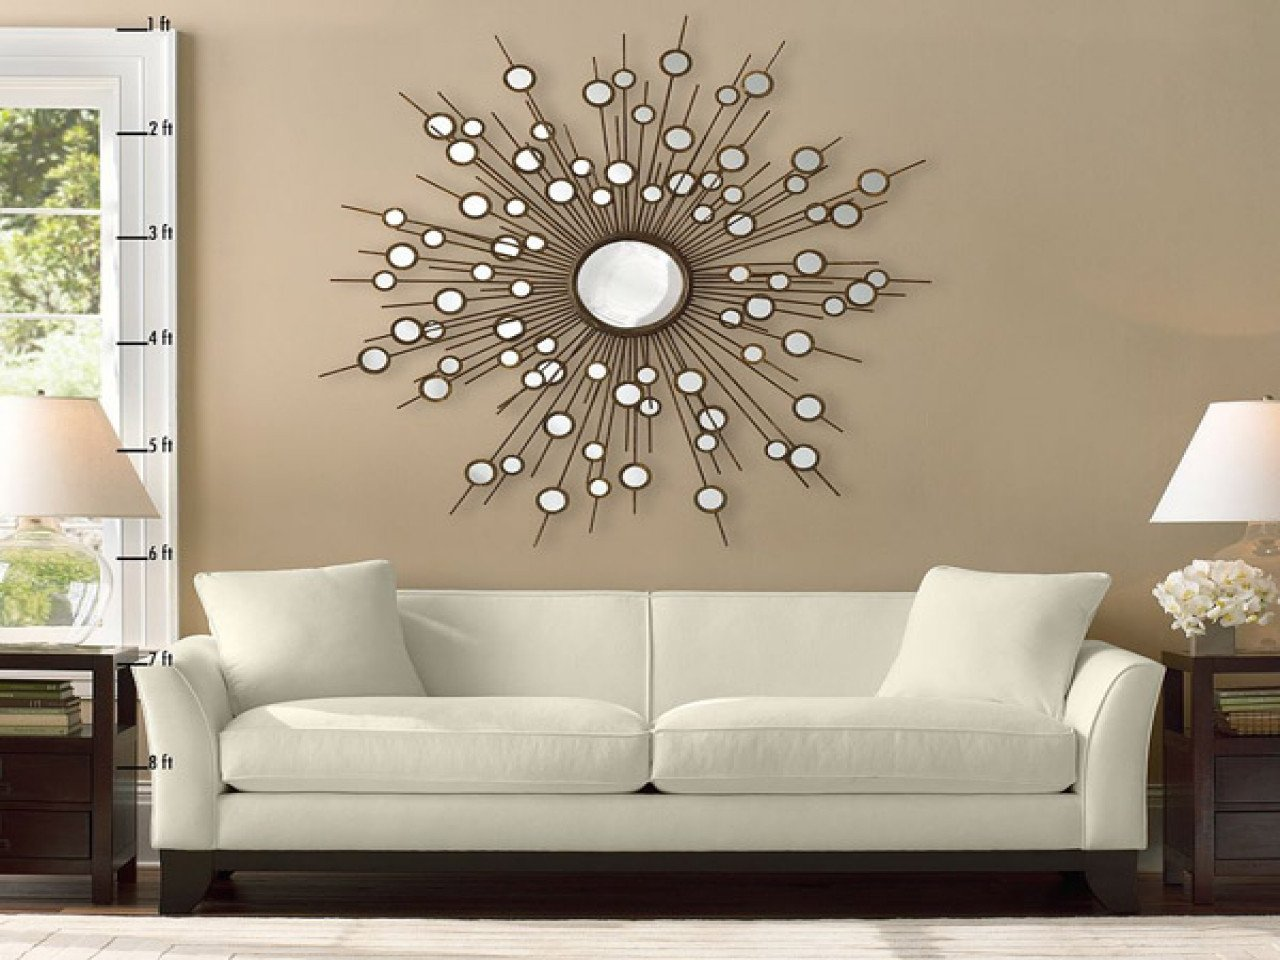 Wall Decor Living Room Ideas Beautiful Room Designs for Women Dining Room Wall Decorating Ideas Mirror Wall Decor Ideas Living Room